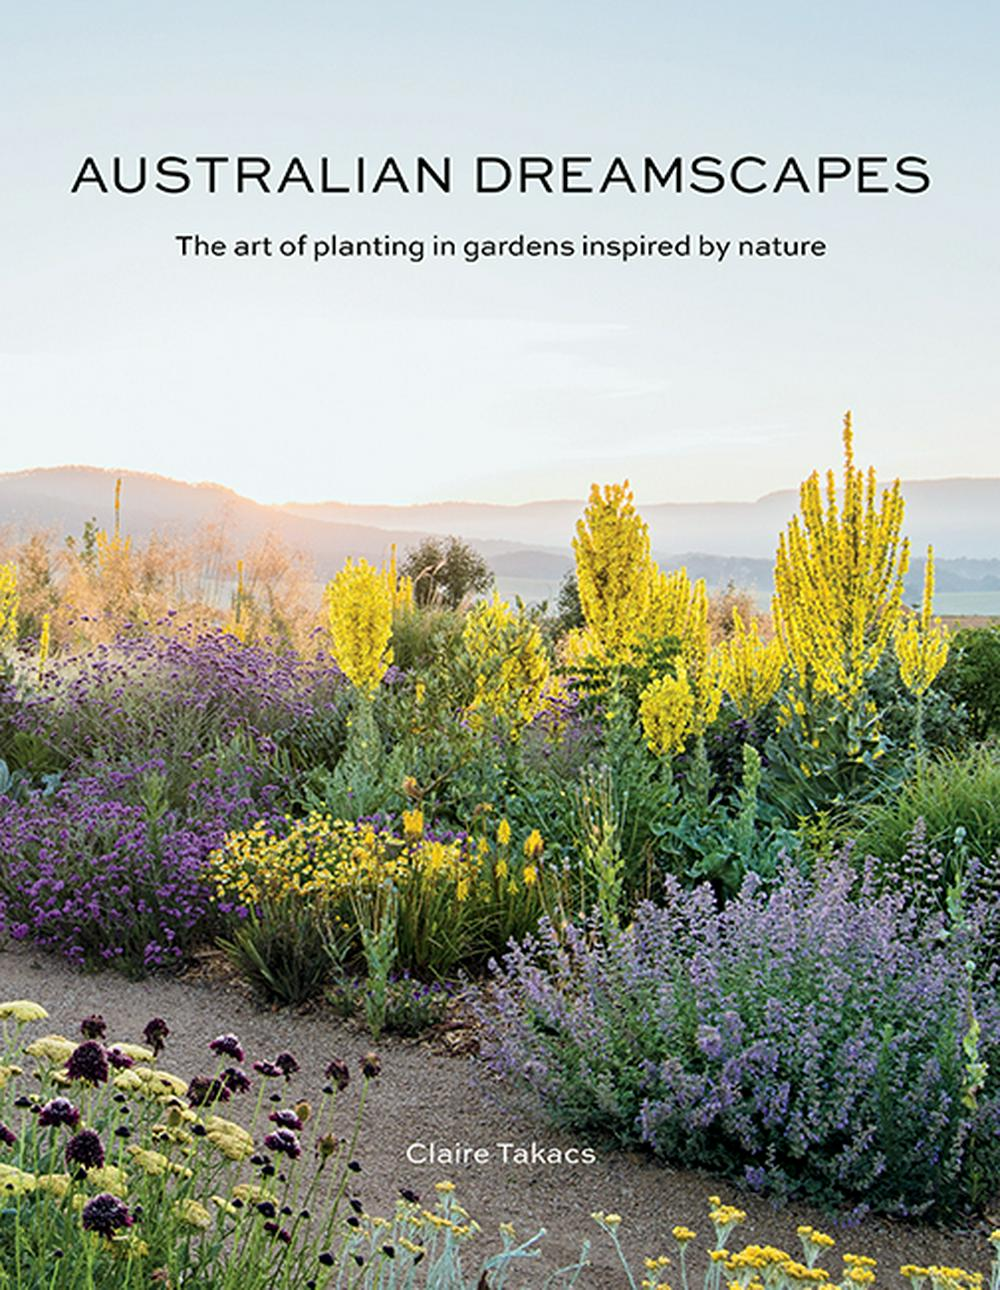 Australian Dreamscapes: Movement, Light and Colour by Claire Takacs, ISBN: 9781743794708